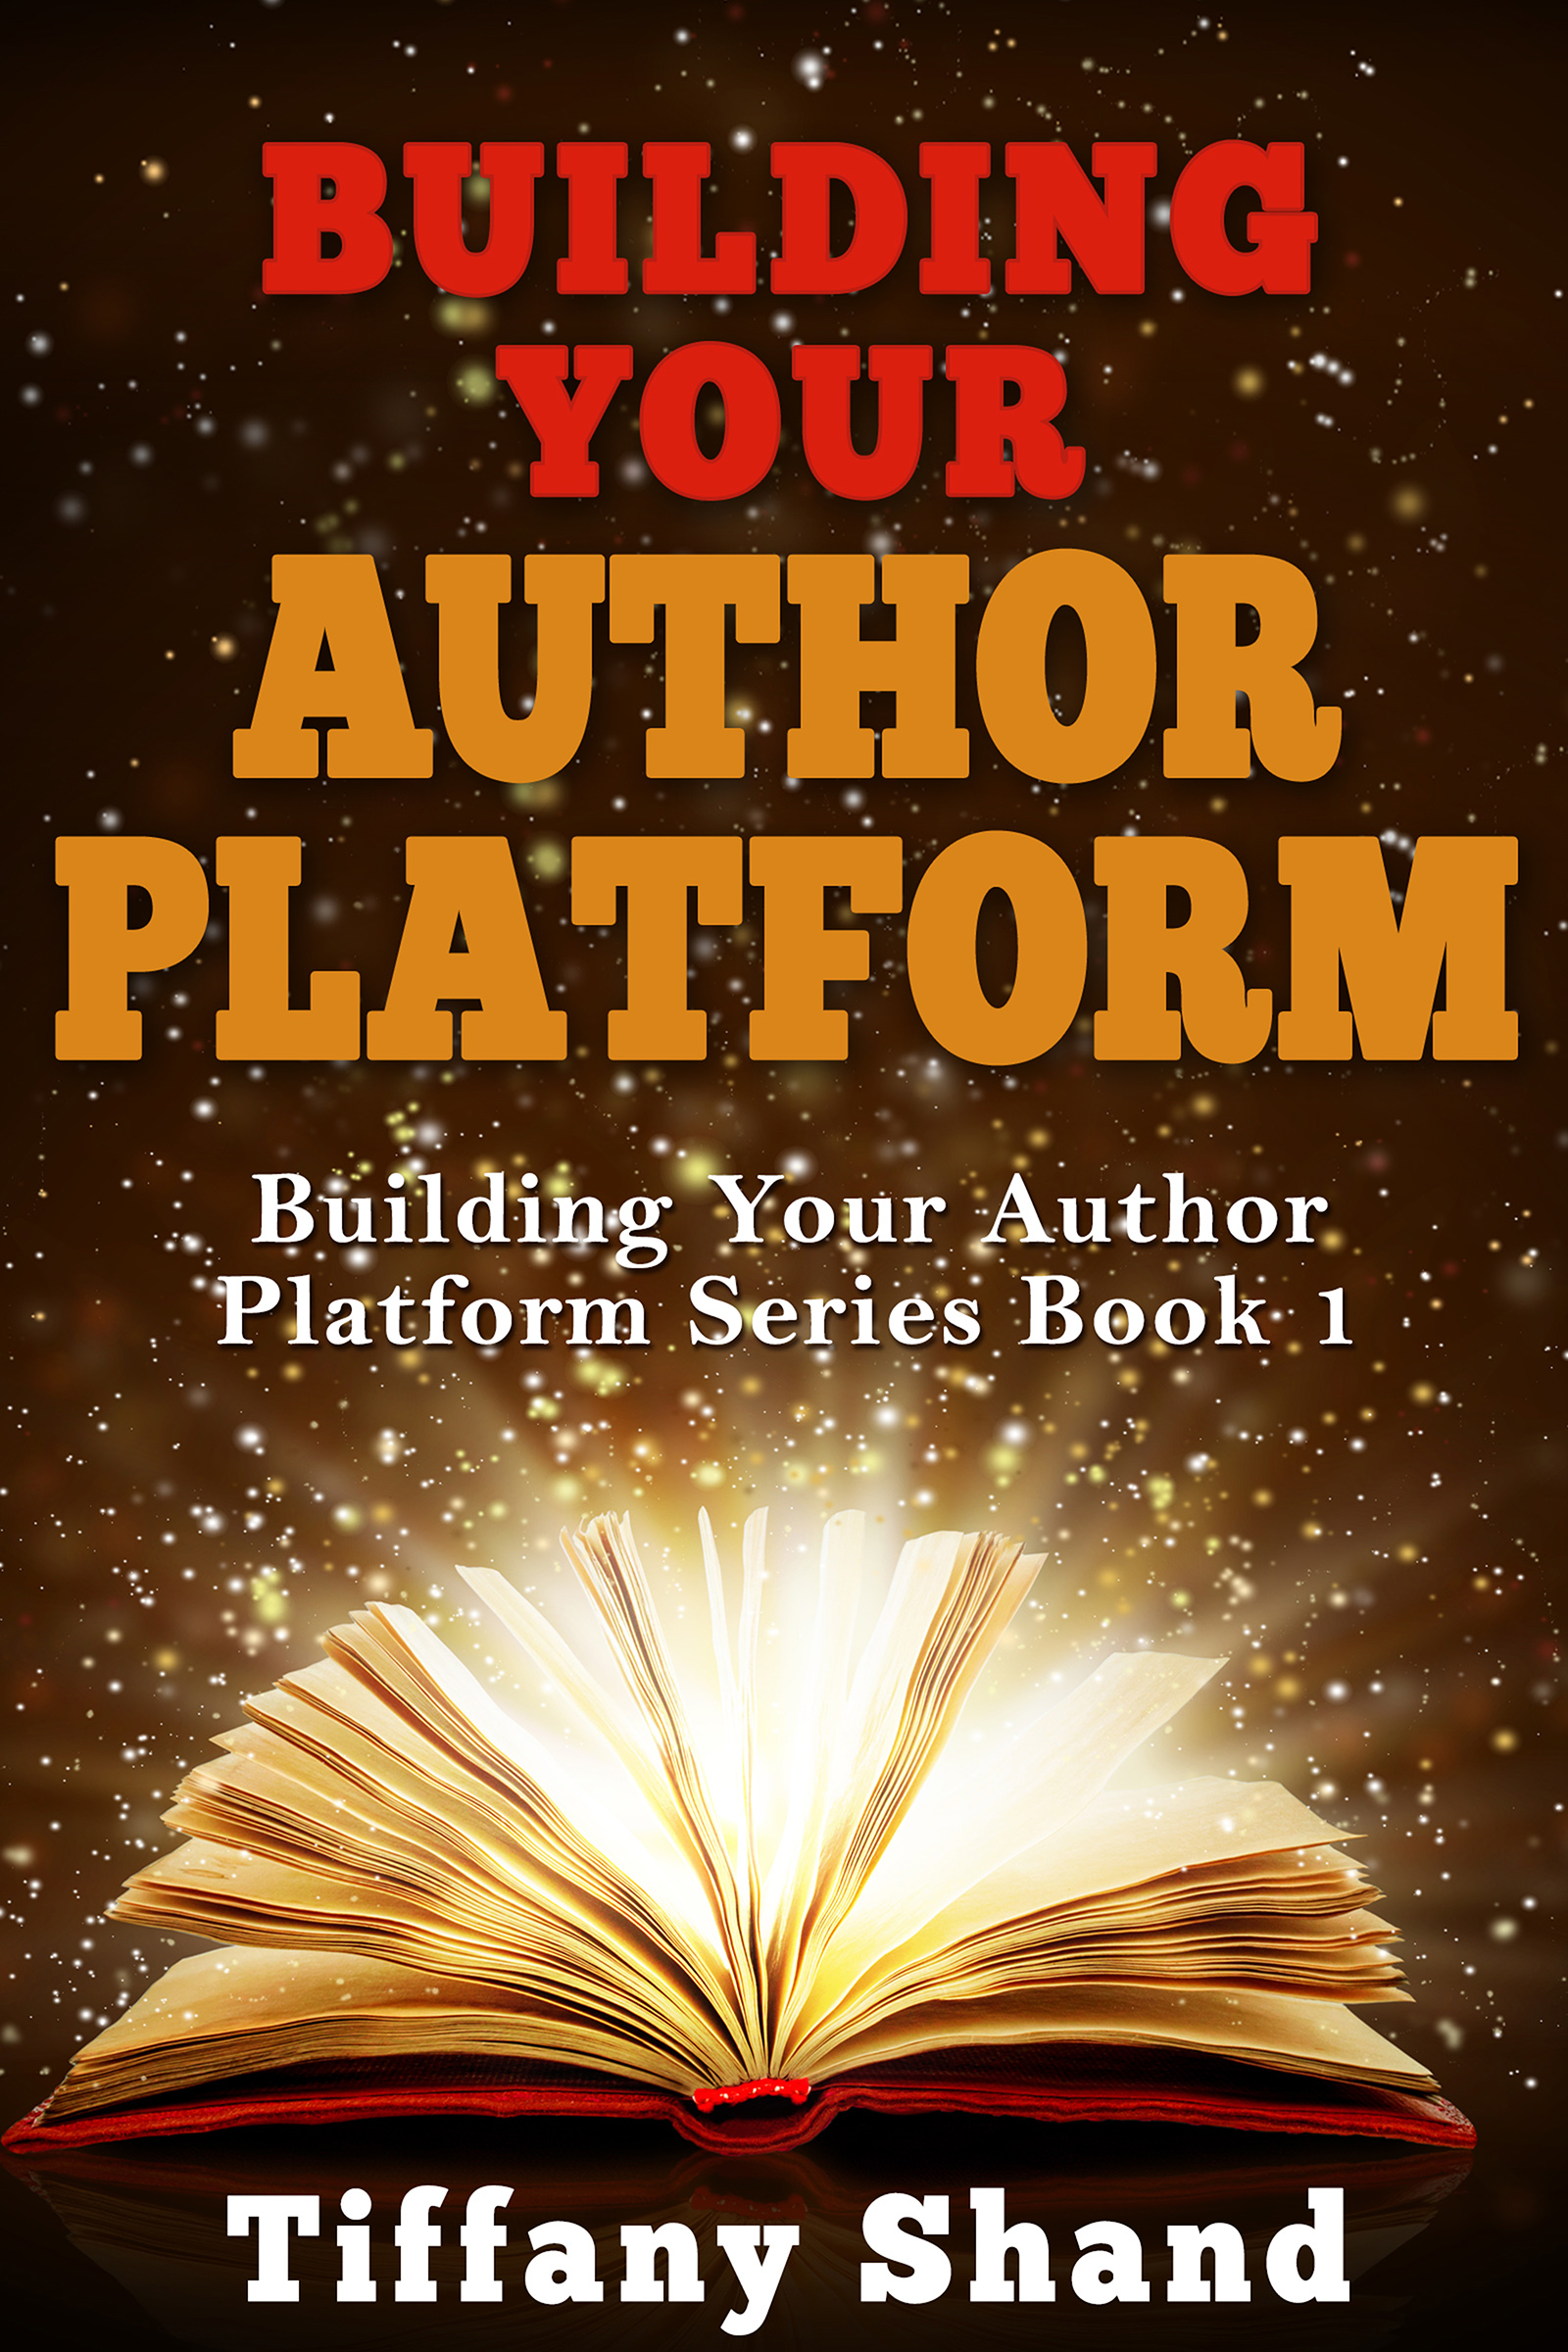 Building Your Author Platform Cover